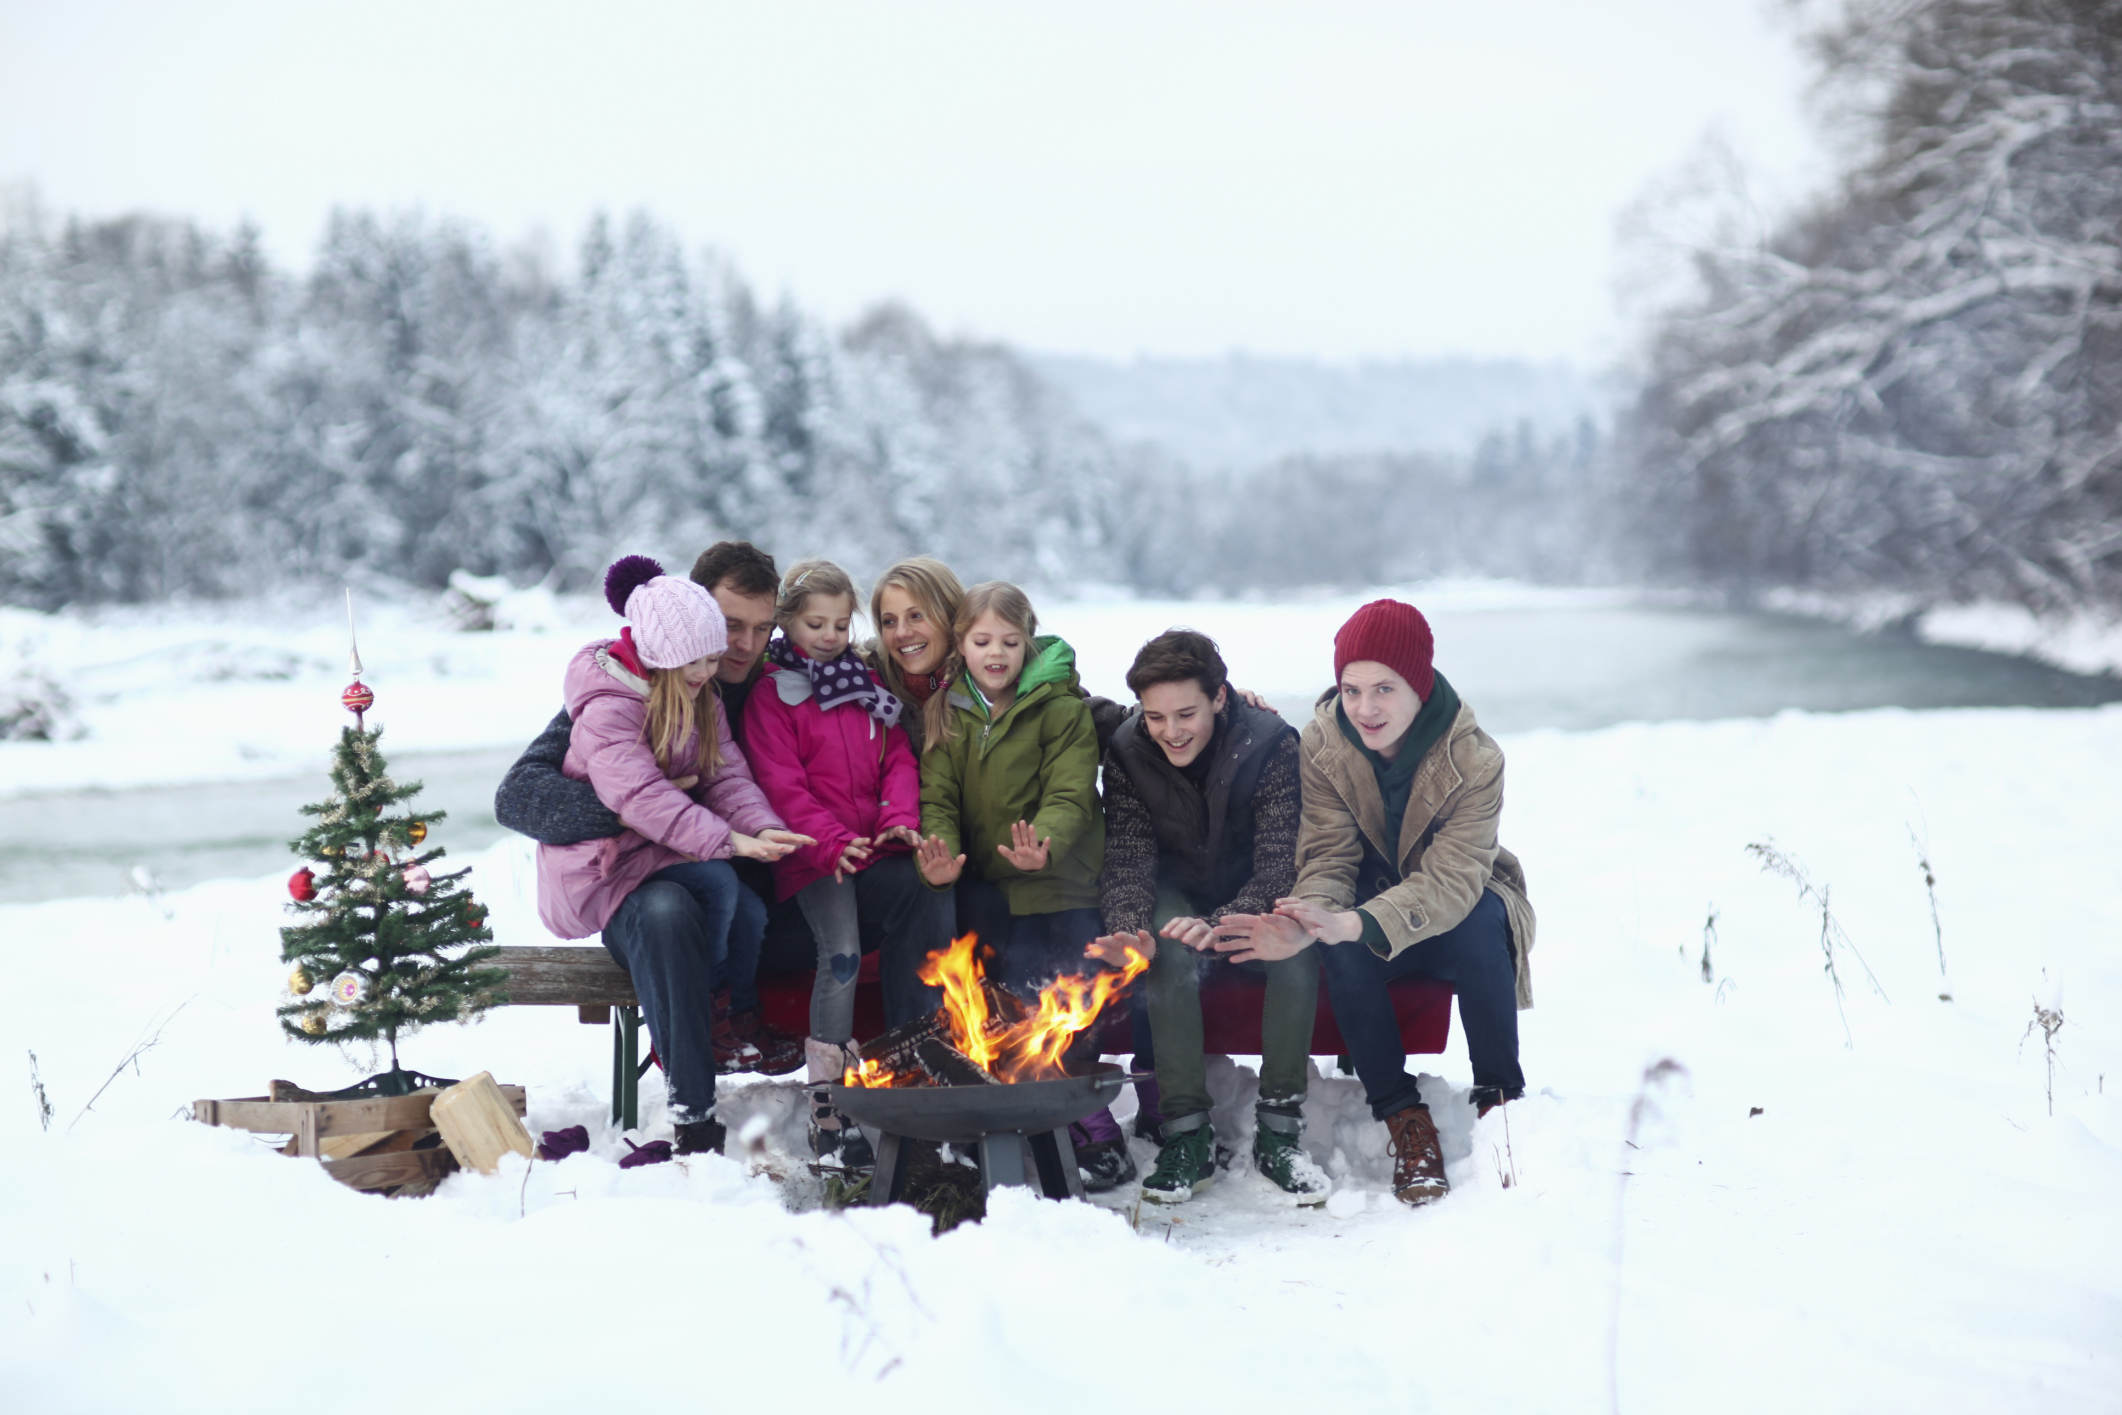 ThinkstockPhotos 470657655 10 Winter Photo Ideas That The Whole Family Can Enjoy